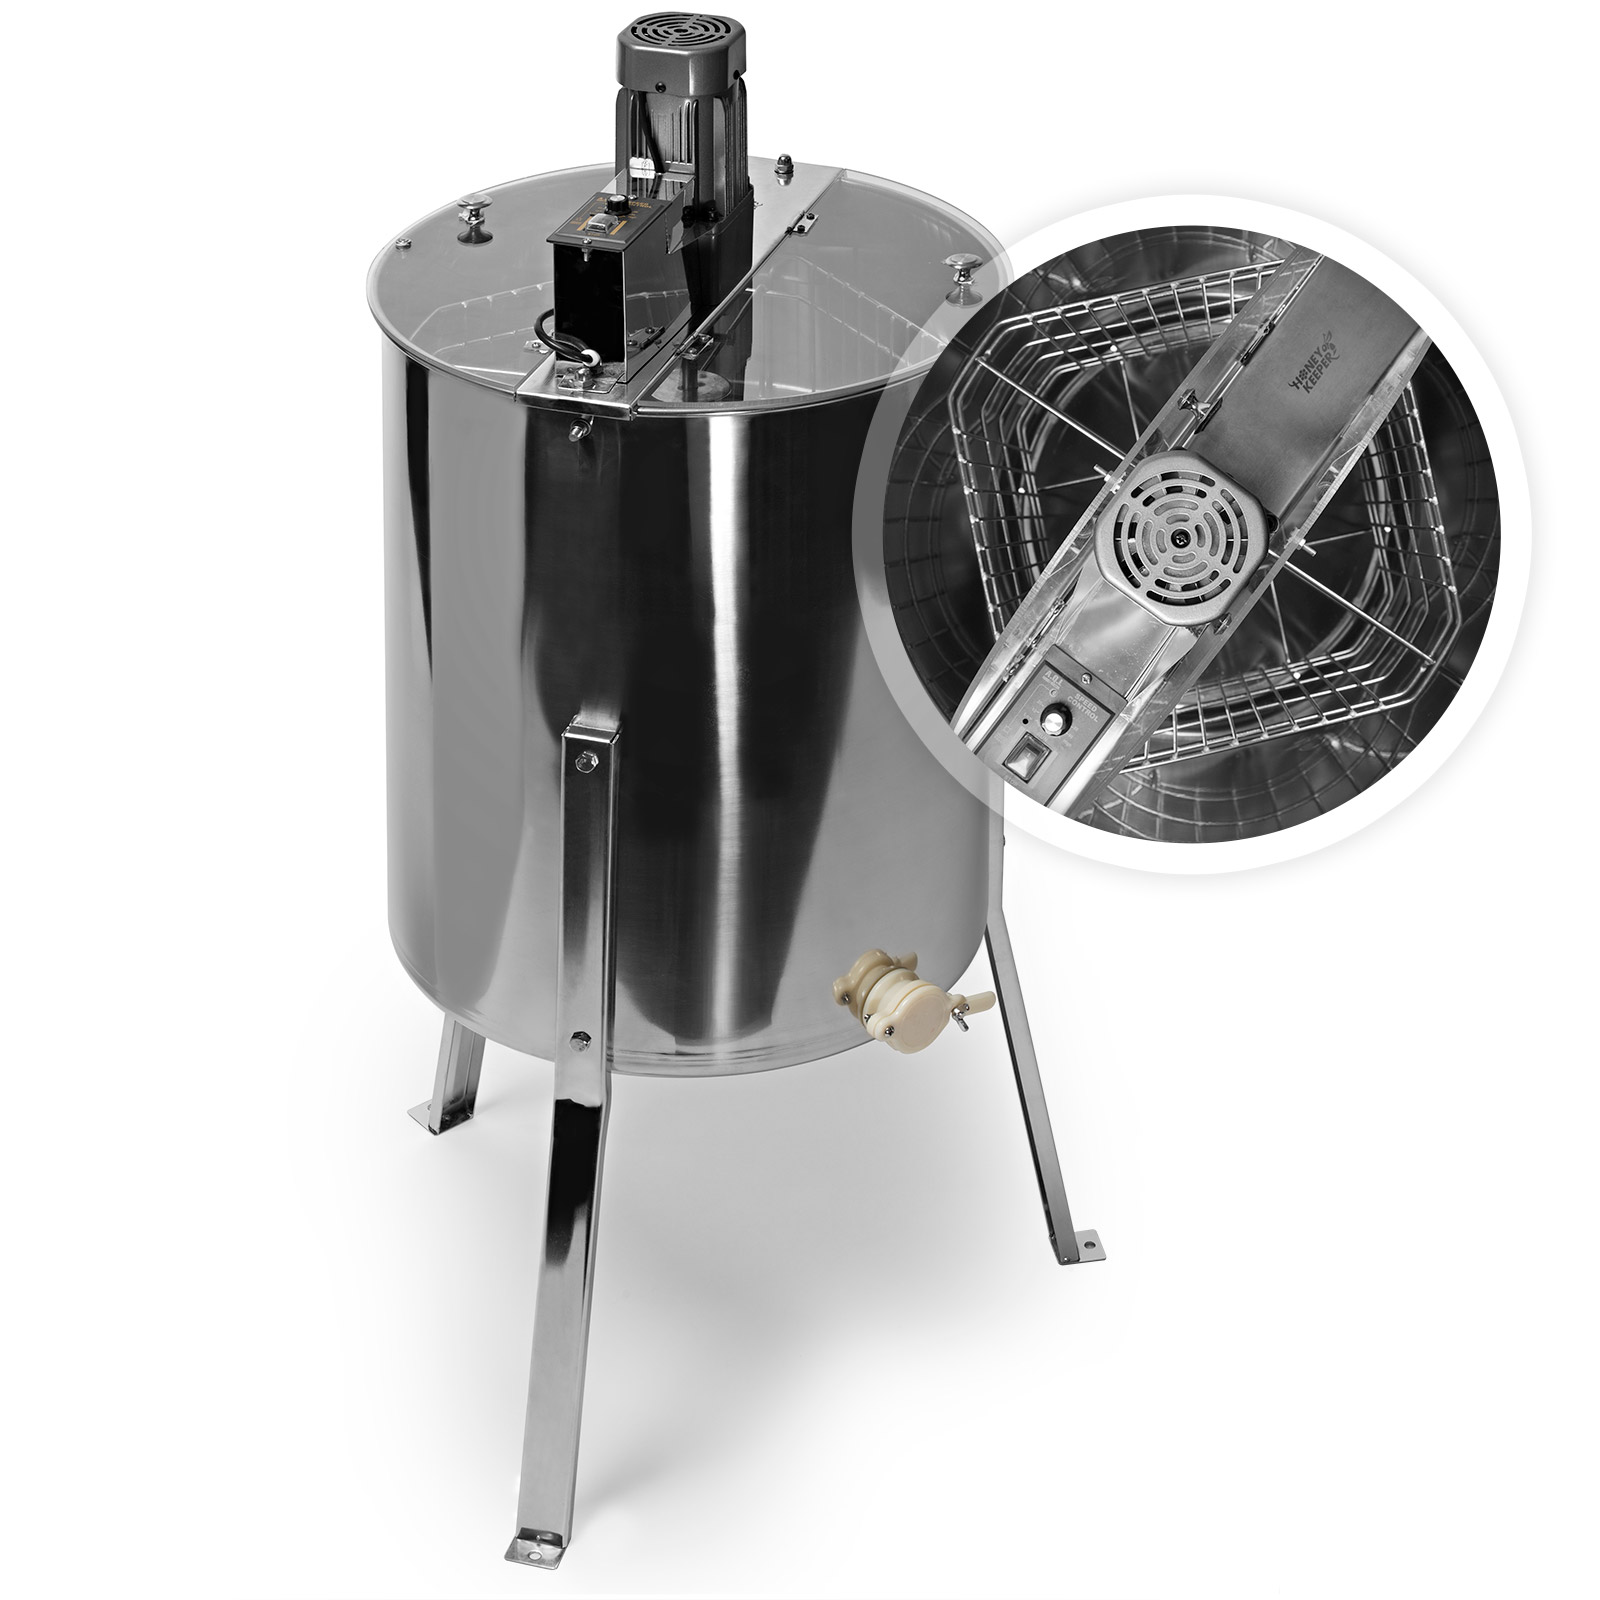 Honey Keeper Pro Electric 4 Four Frame Stainless Steel Honey Extractor Beekeeping Equipment Honeycomb Drum